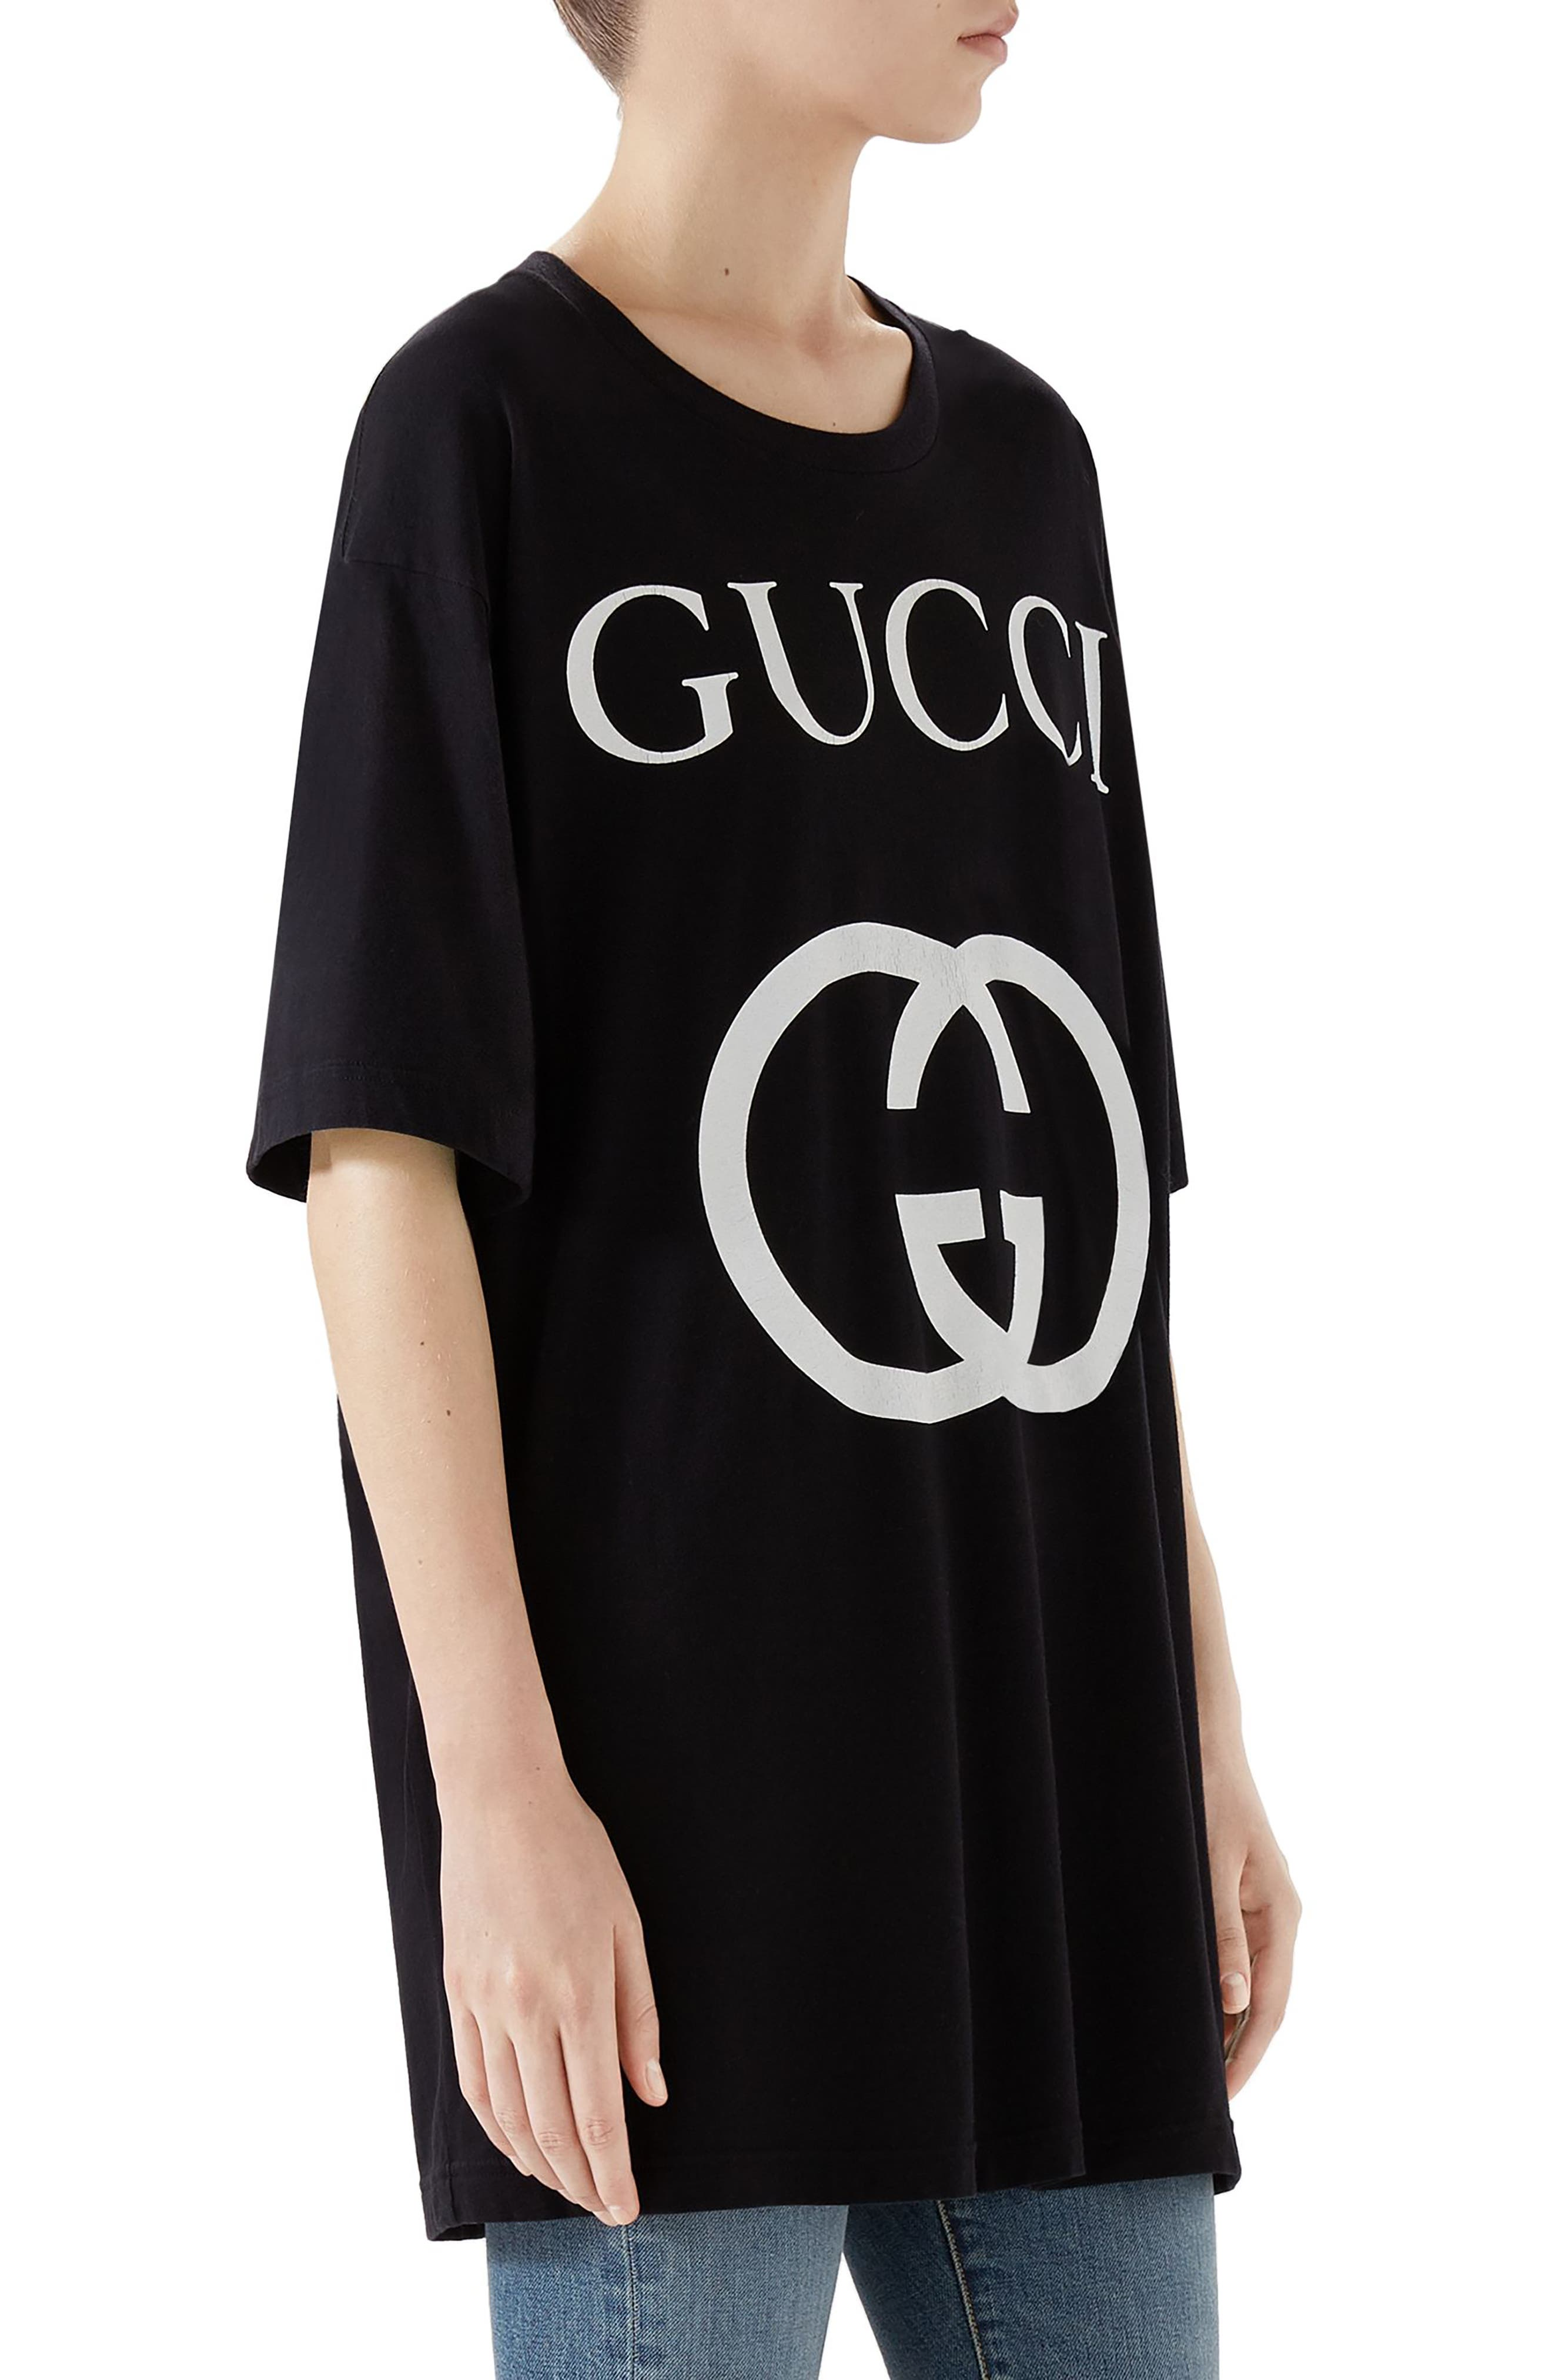 GUCCI, GG Interlock Tee, Alternate thumbnail 3, color, BLACK